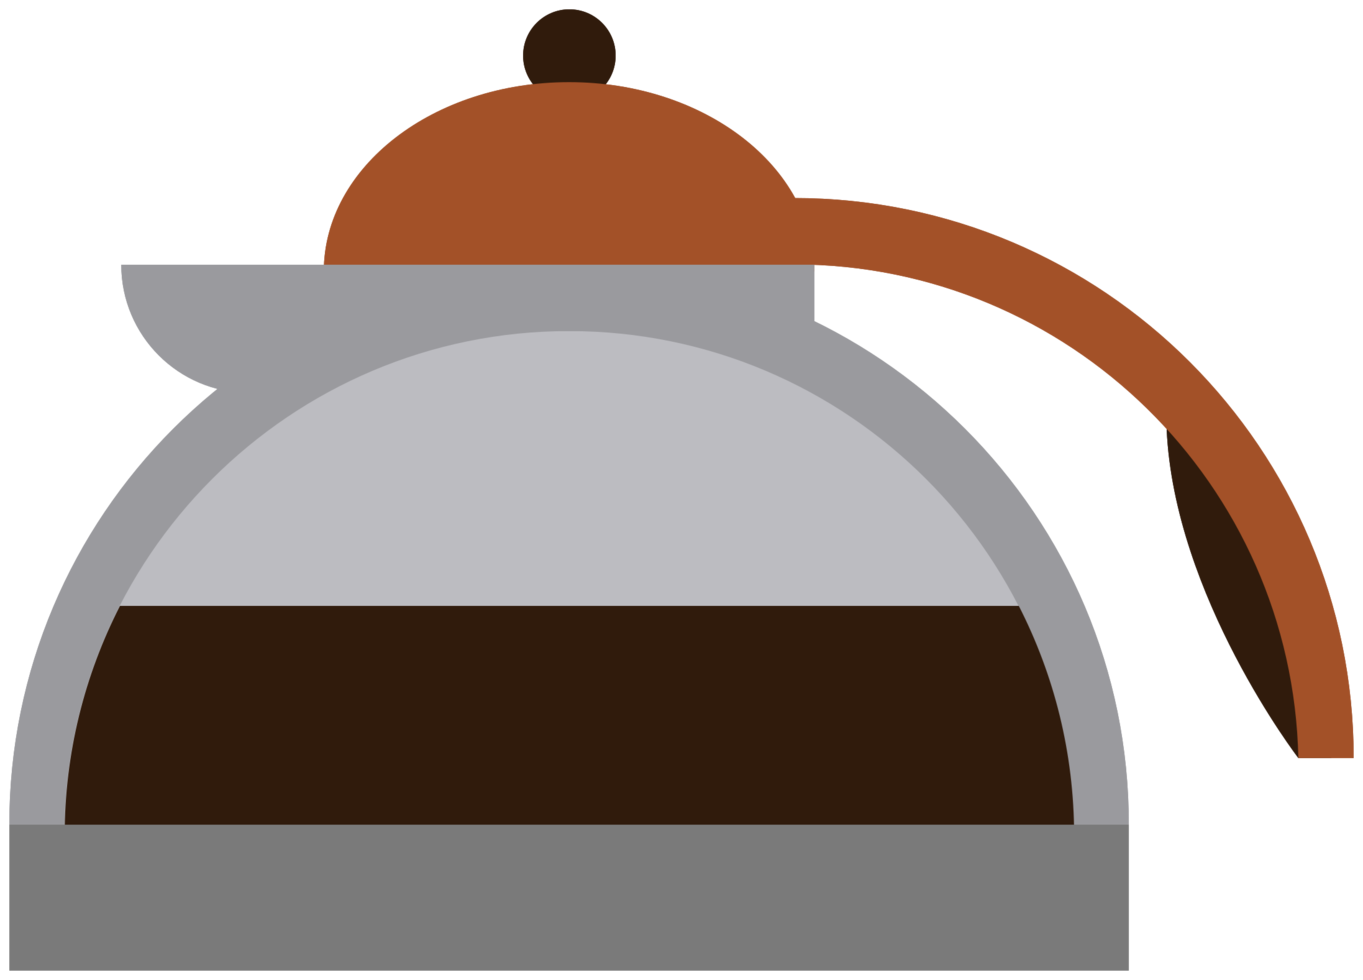 cafetera png